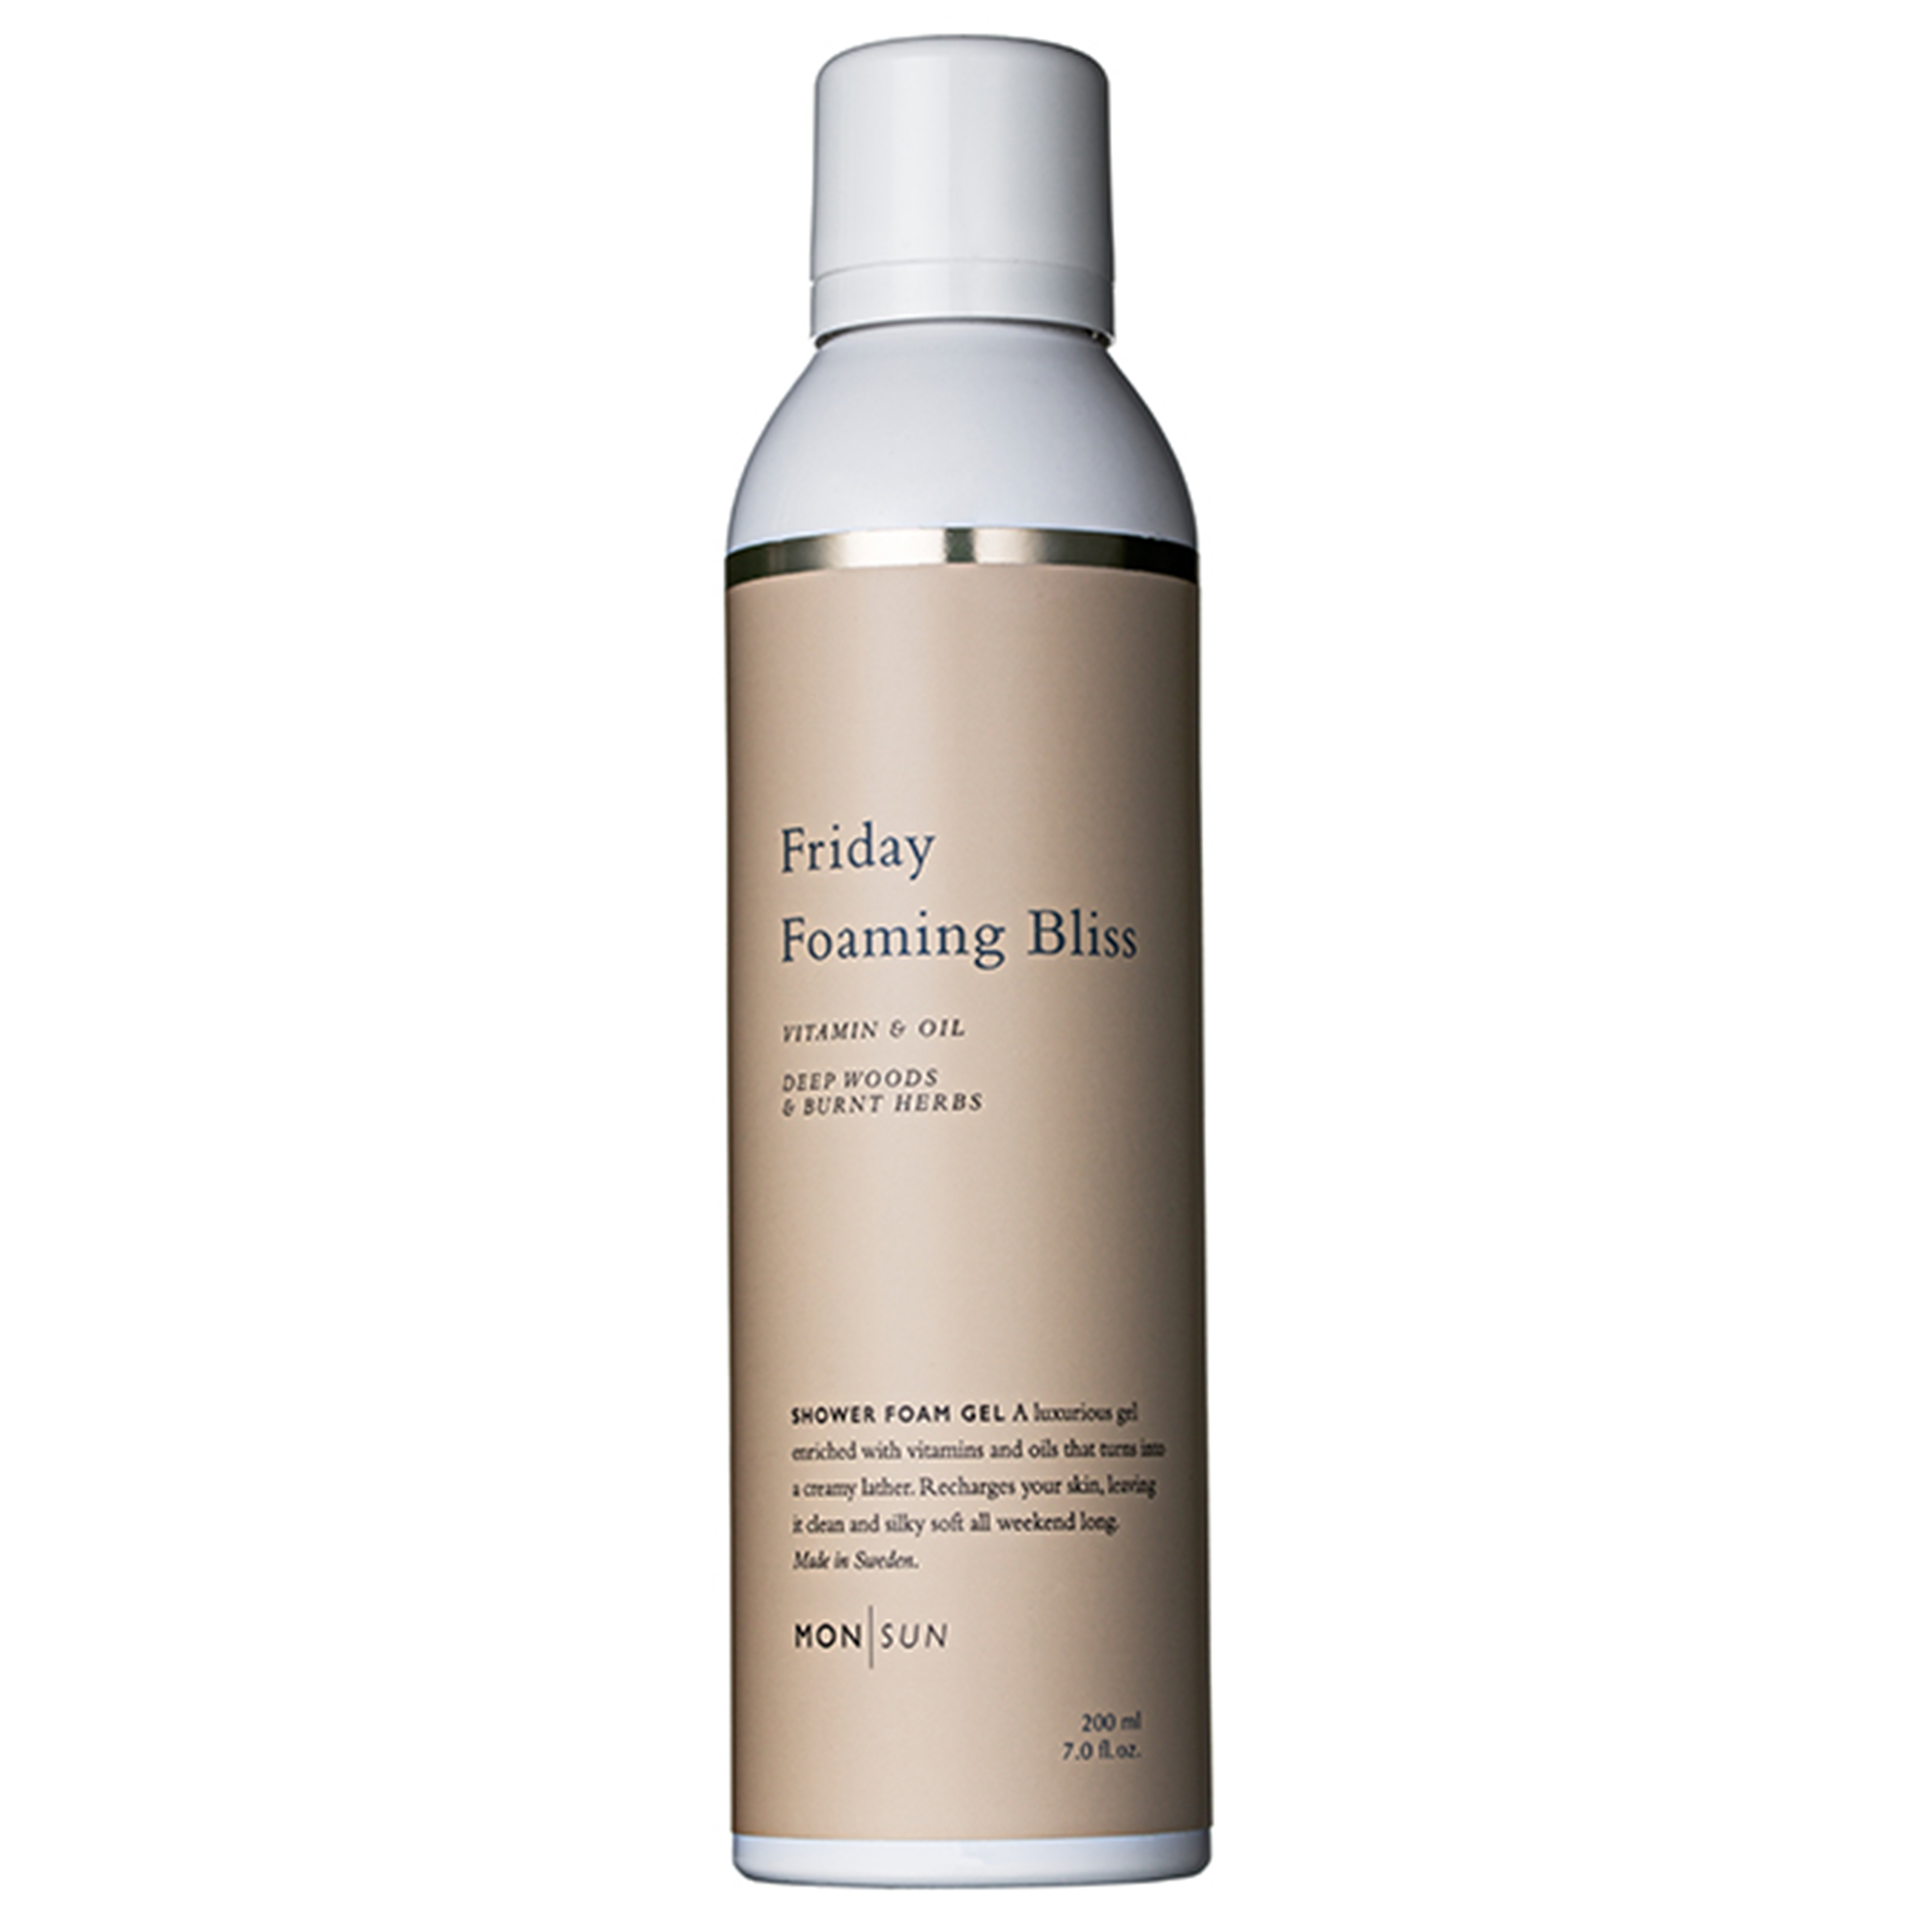 Friday Foaming Bliss Vitamin & Oil Shower Gel